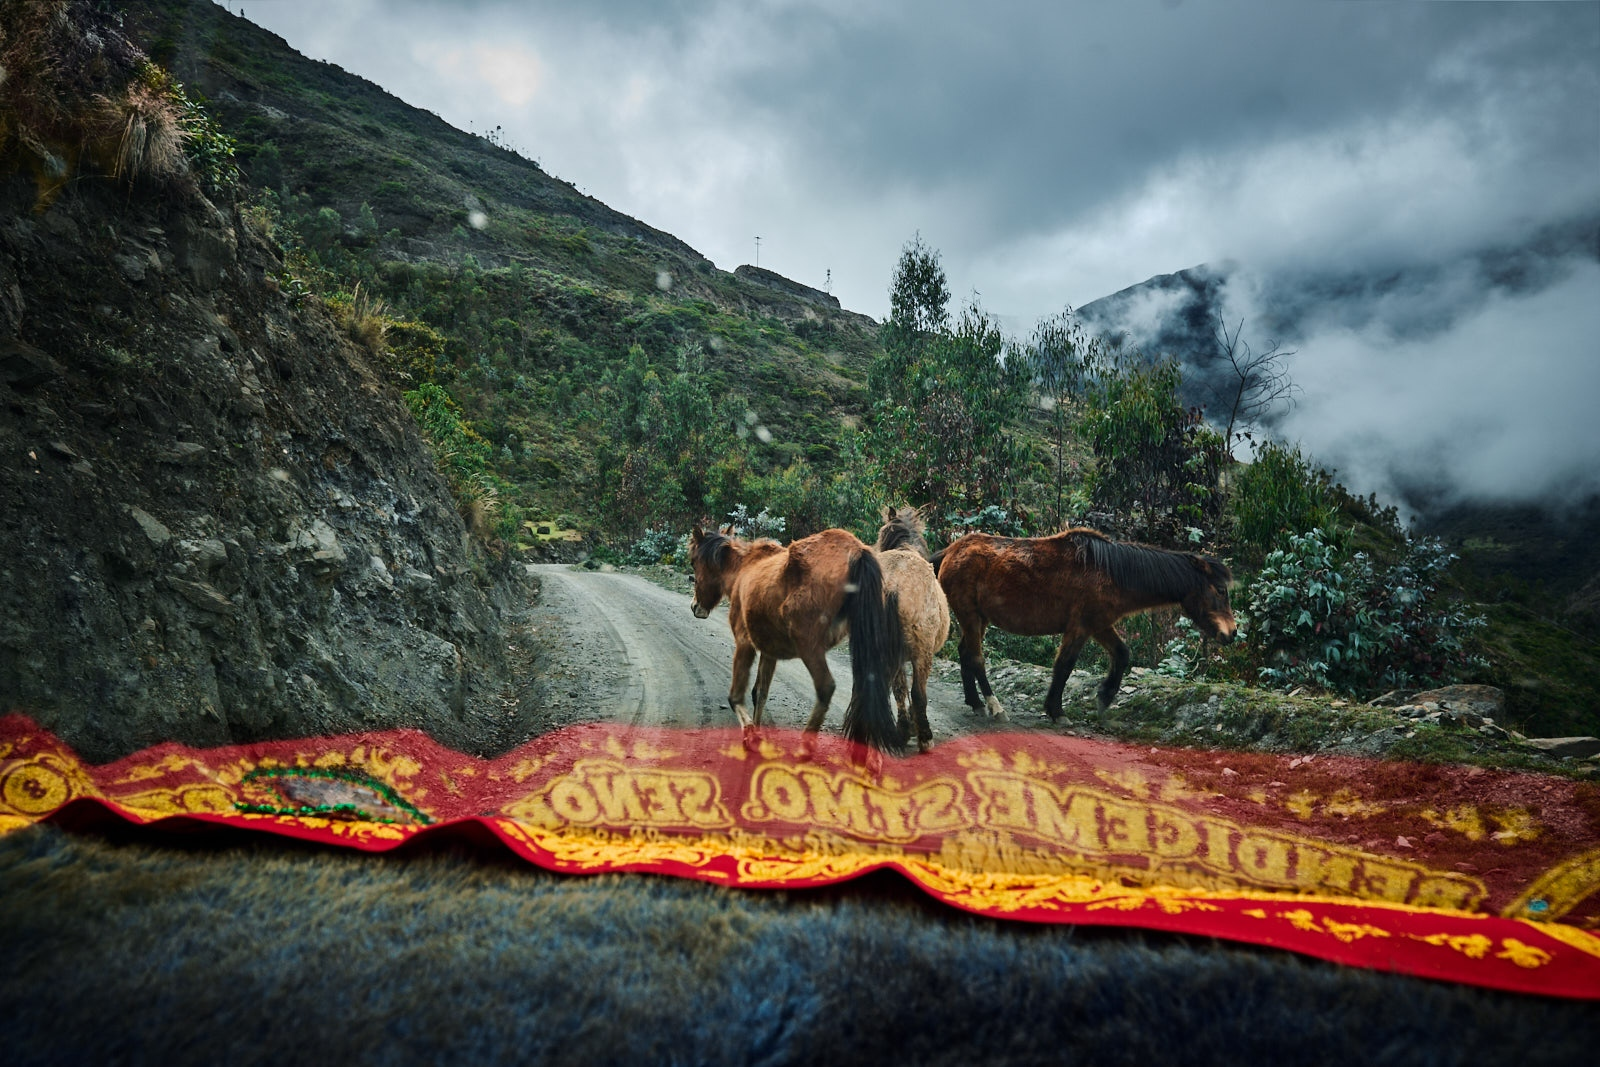 Wild horses block the road in the Lares Valley, Peru.